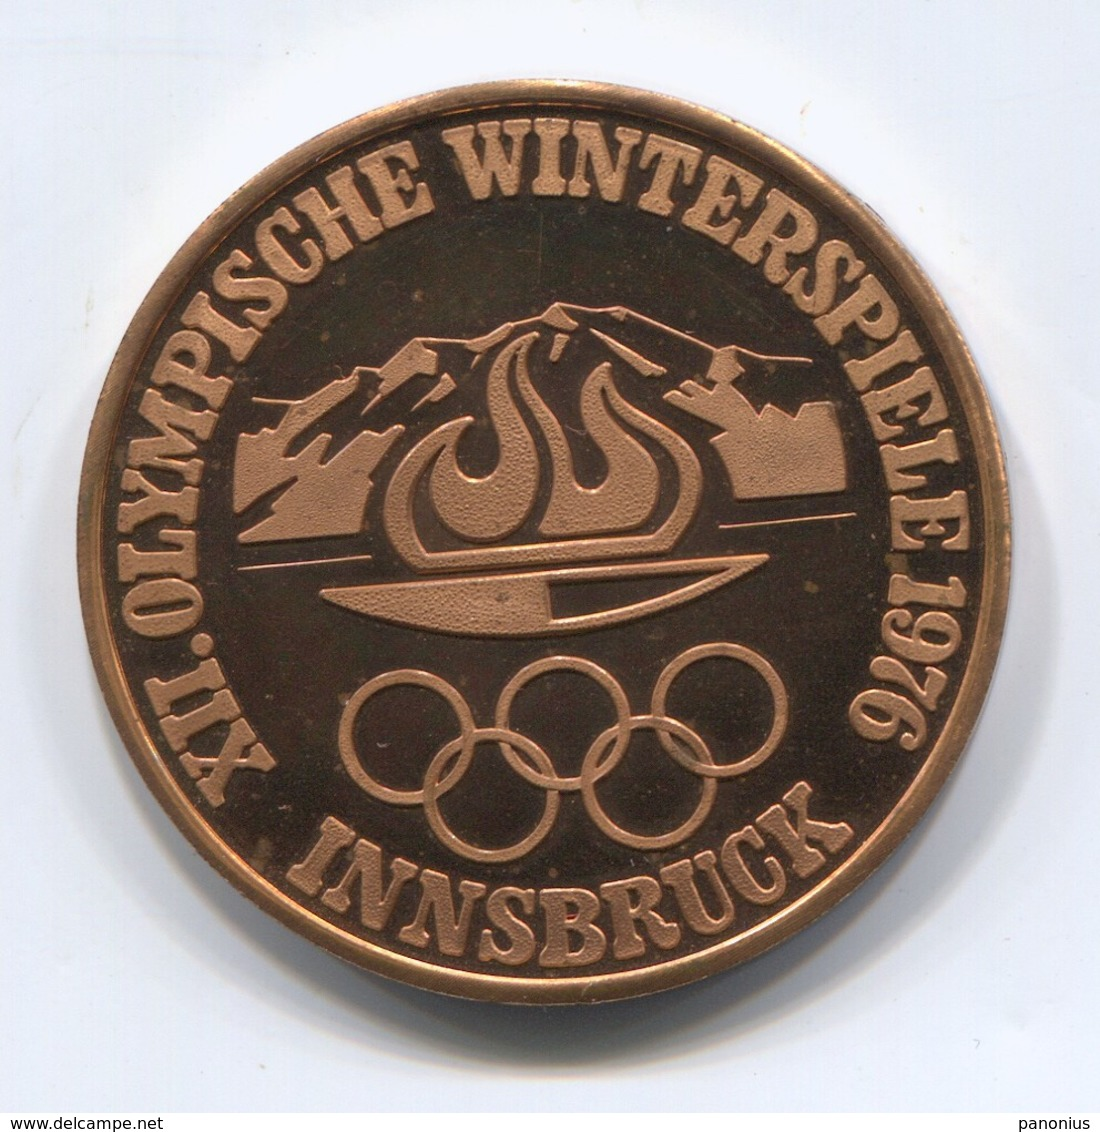 OLYMPIC OLYMPIADE COMMITTEE - INNSBRUCK AUSTRIA 1976, FAST SKATING, MEDAL, D 35 Mm - Habillement, Souvenirs & Autres